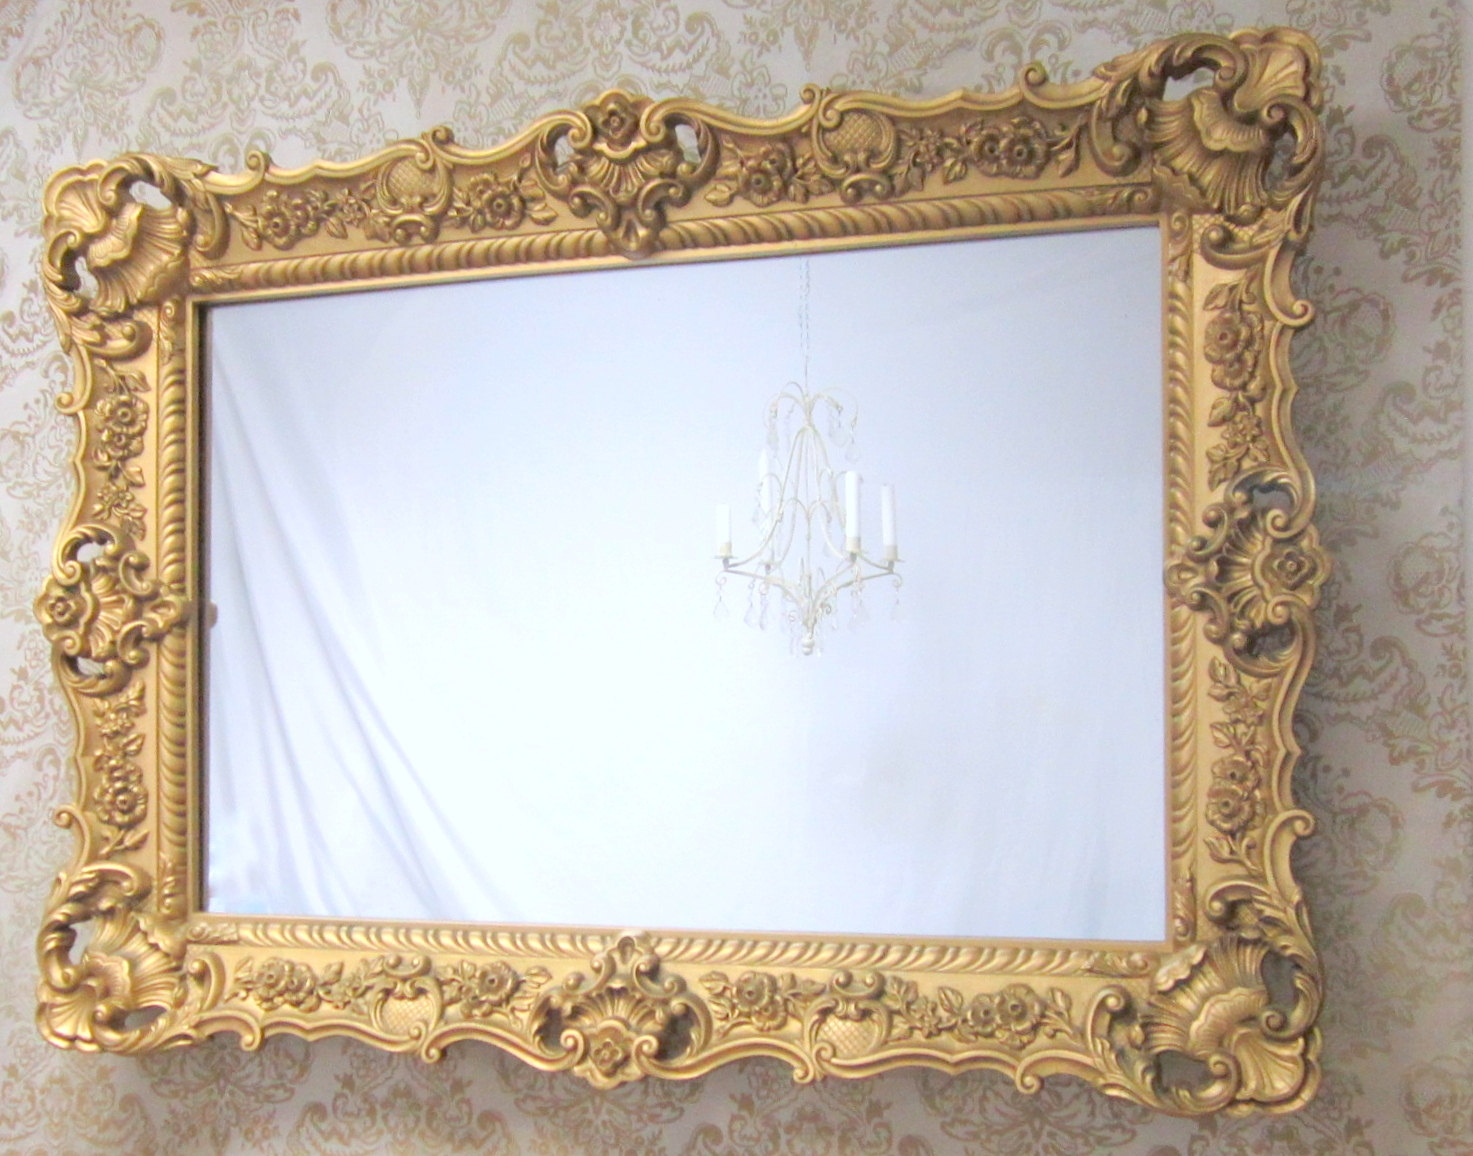 Hollywood Regency Mirrors For Sale 45×33 Large Vanity Mirror Within Ornate Gold Mirror (View 3 of 15)